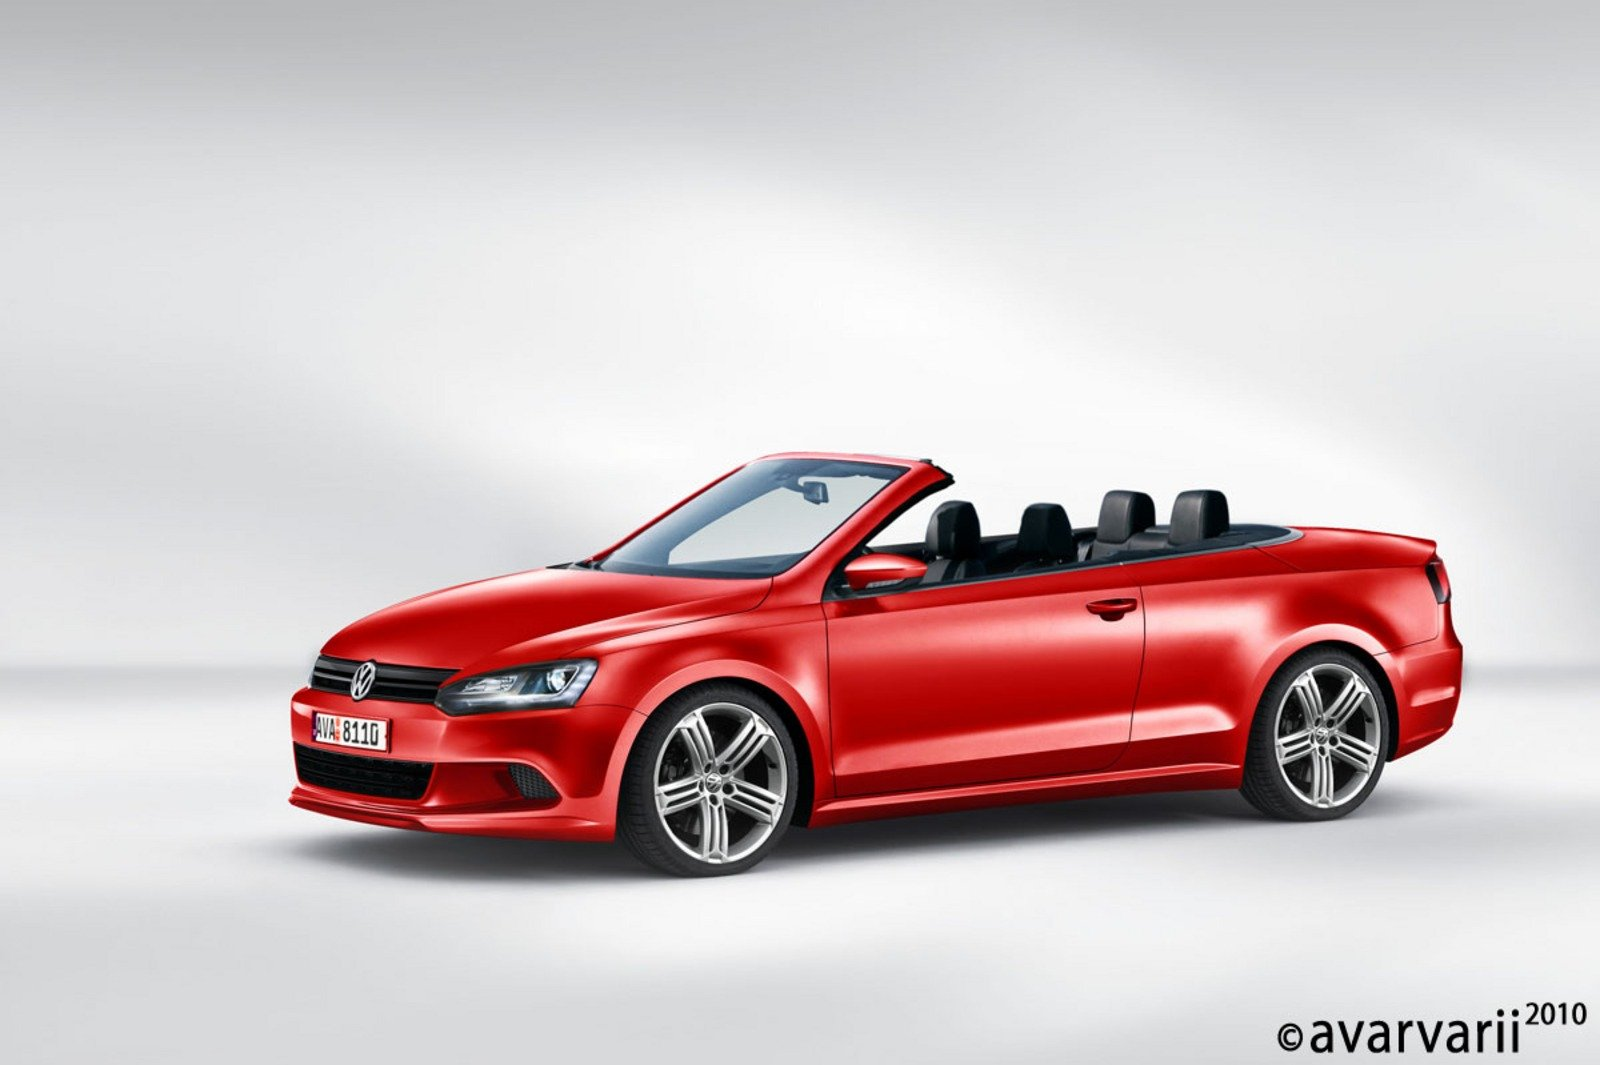 new facelift 2011 vw eos rendered news top speed. Black Bedroom Furniture Sets. Home Design Ideas